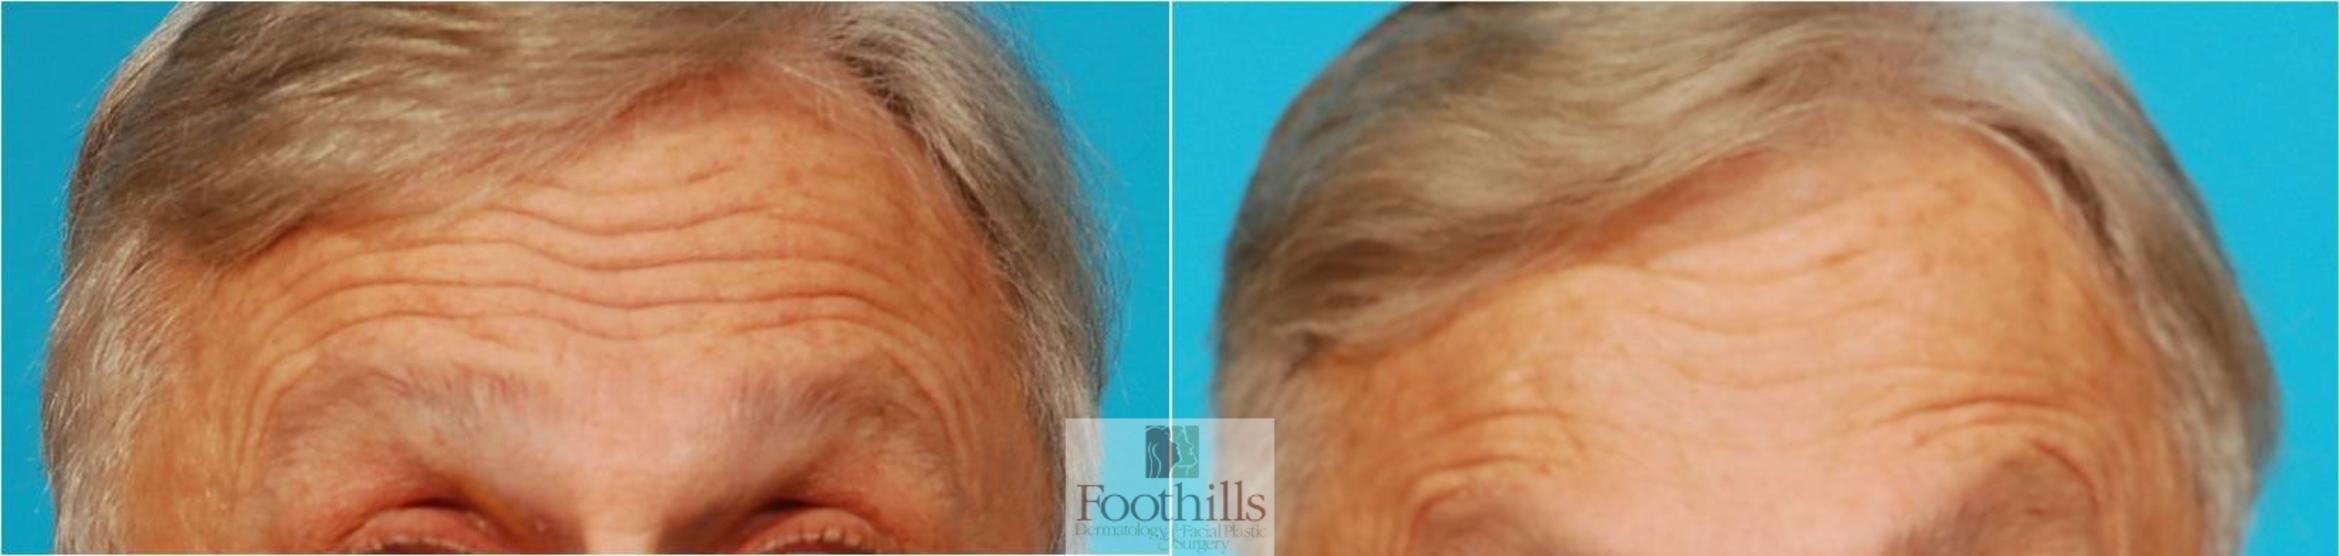 BOTOX® Cosmetic Case 61 Before & After View #1 | Tucson, Az | Foothills Dermatology & Facial Plastic Surgery